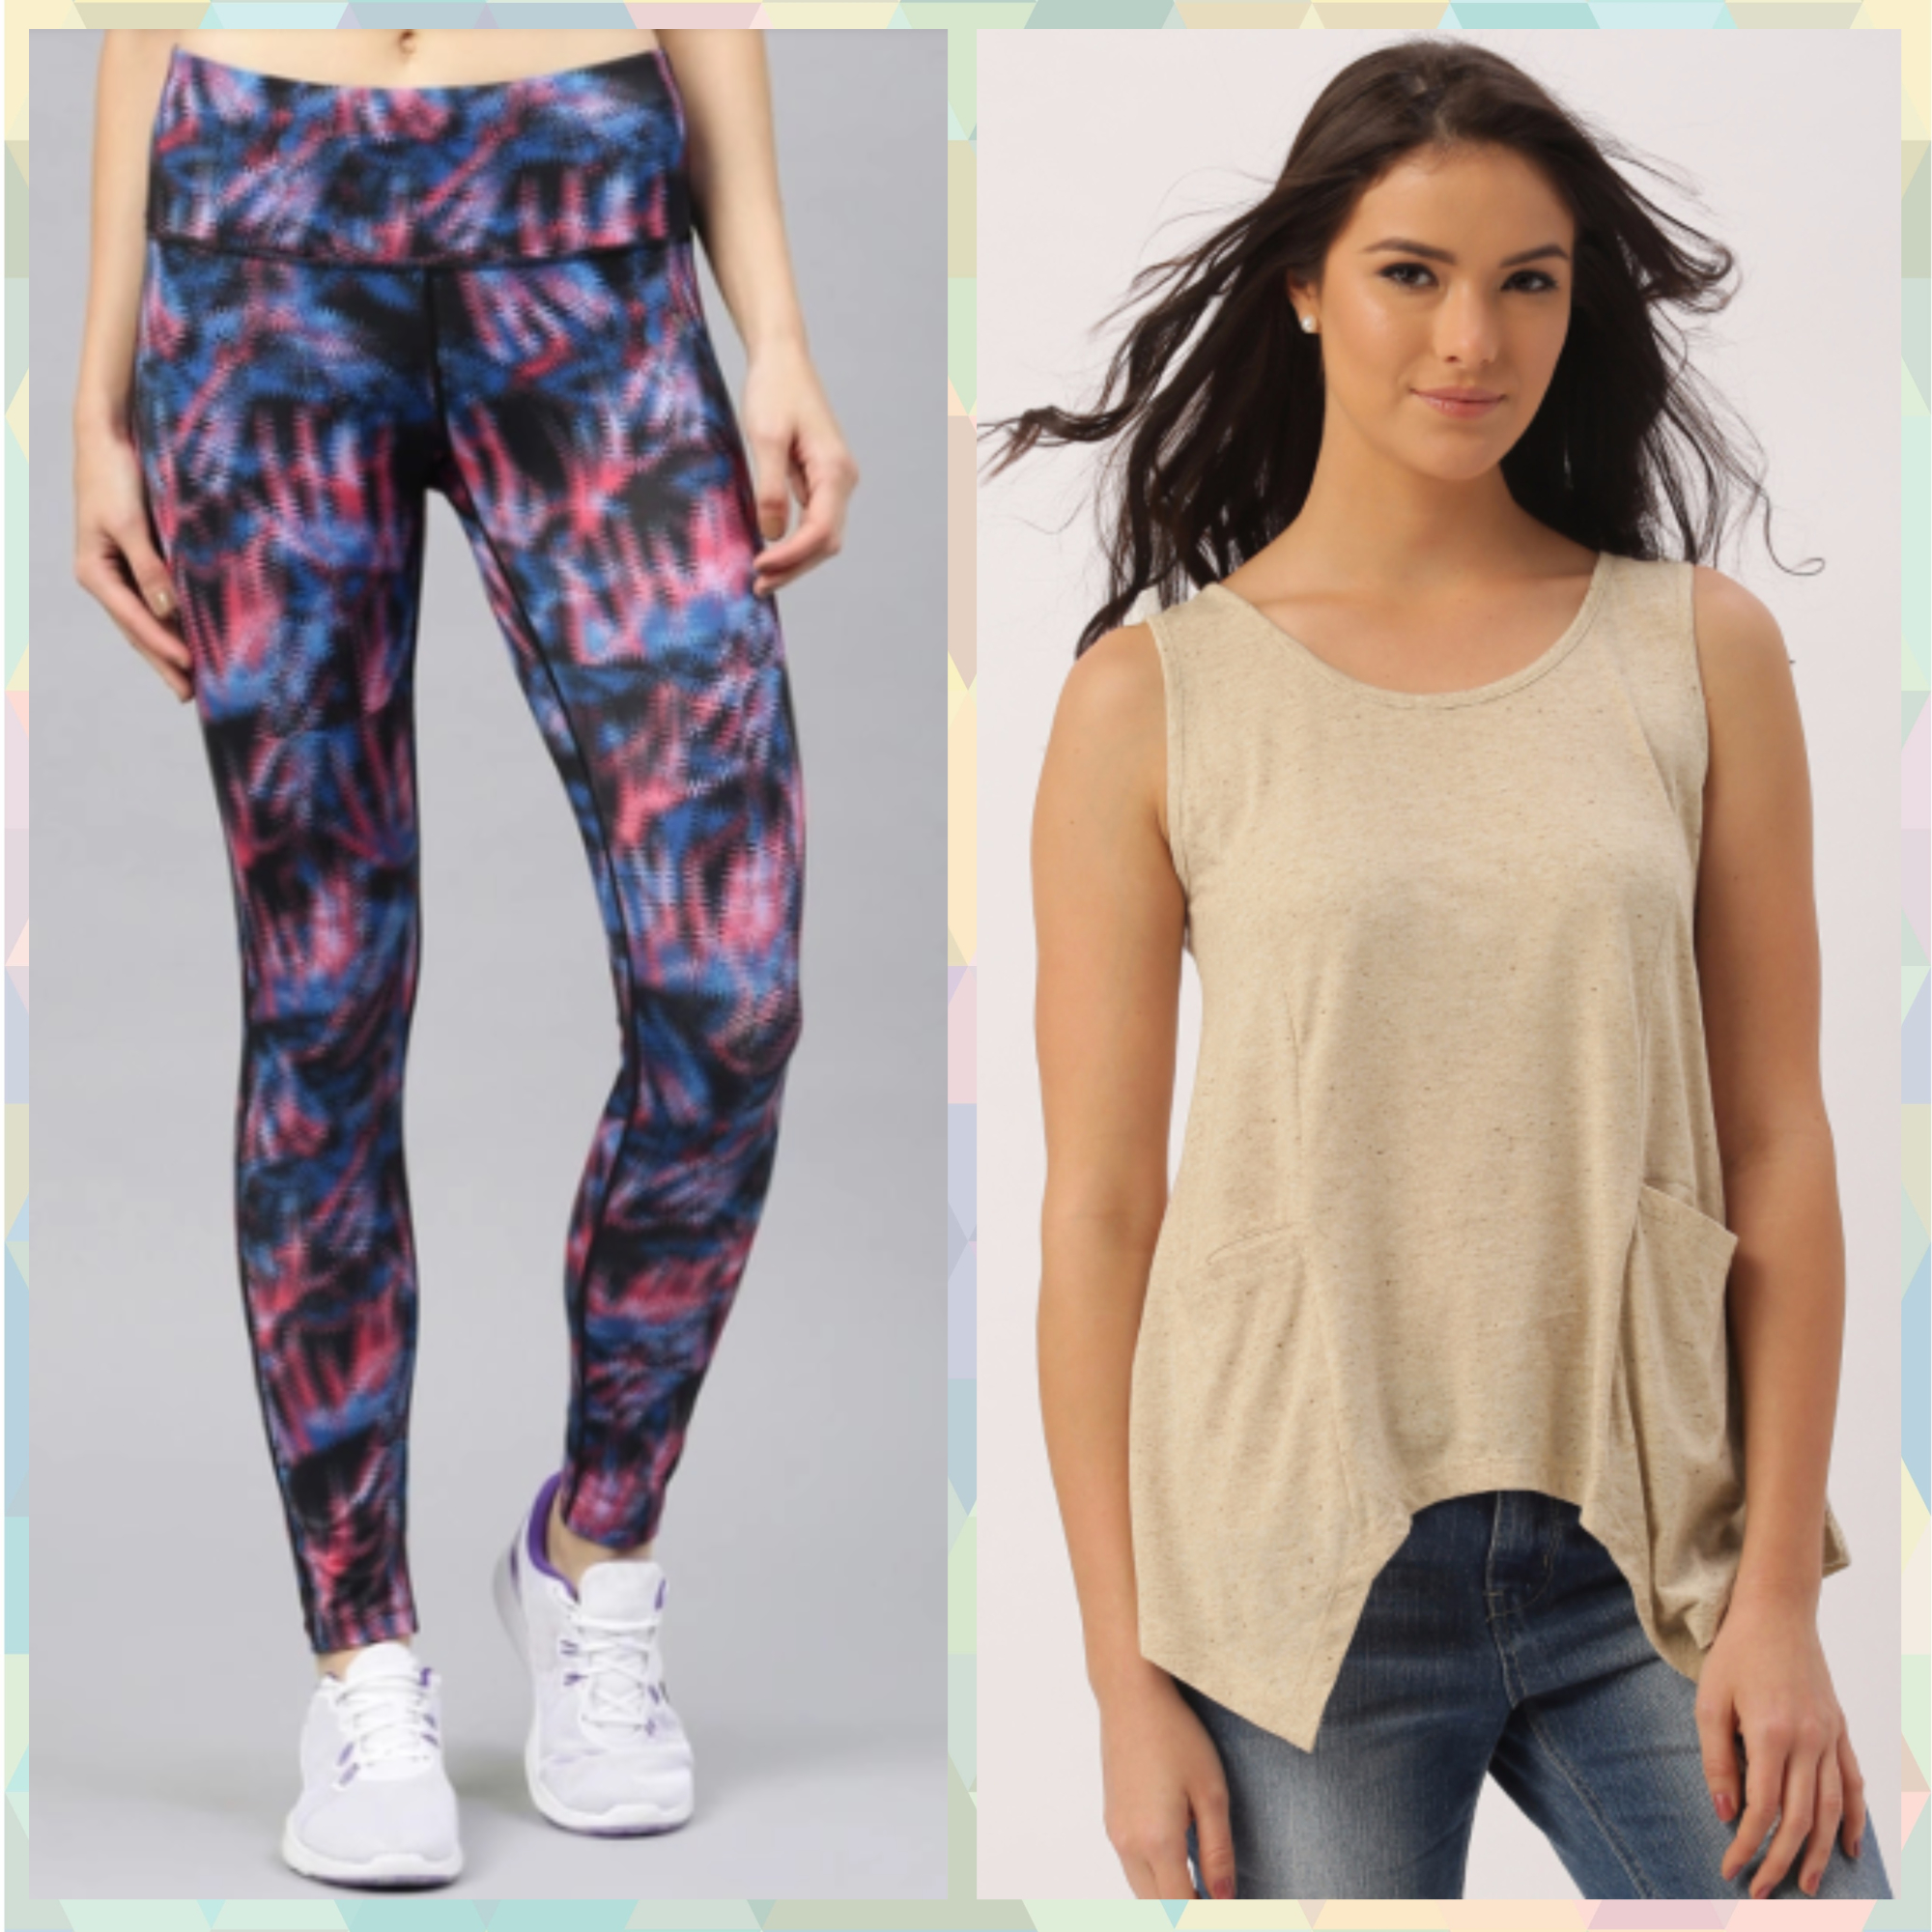 5-outfits for when you are on your period-Printed tights   Cool Tees